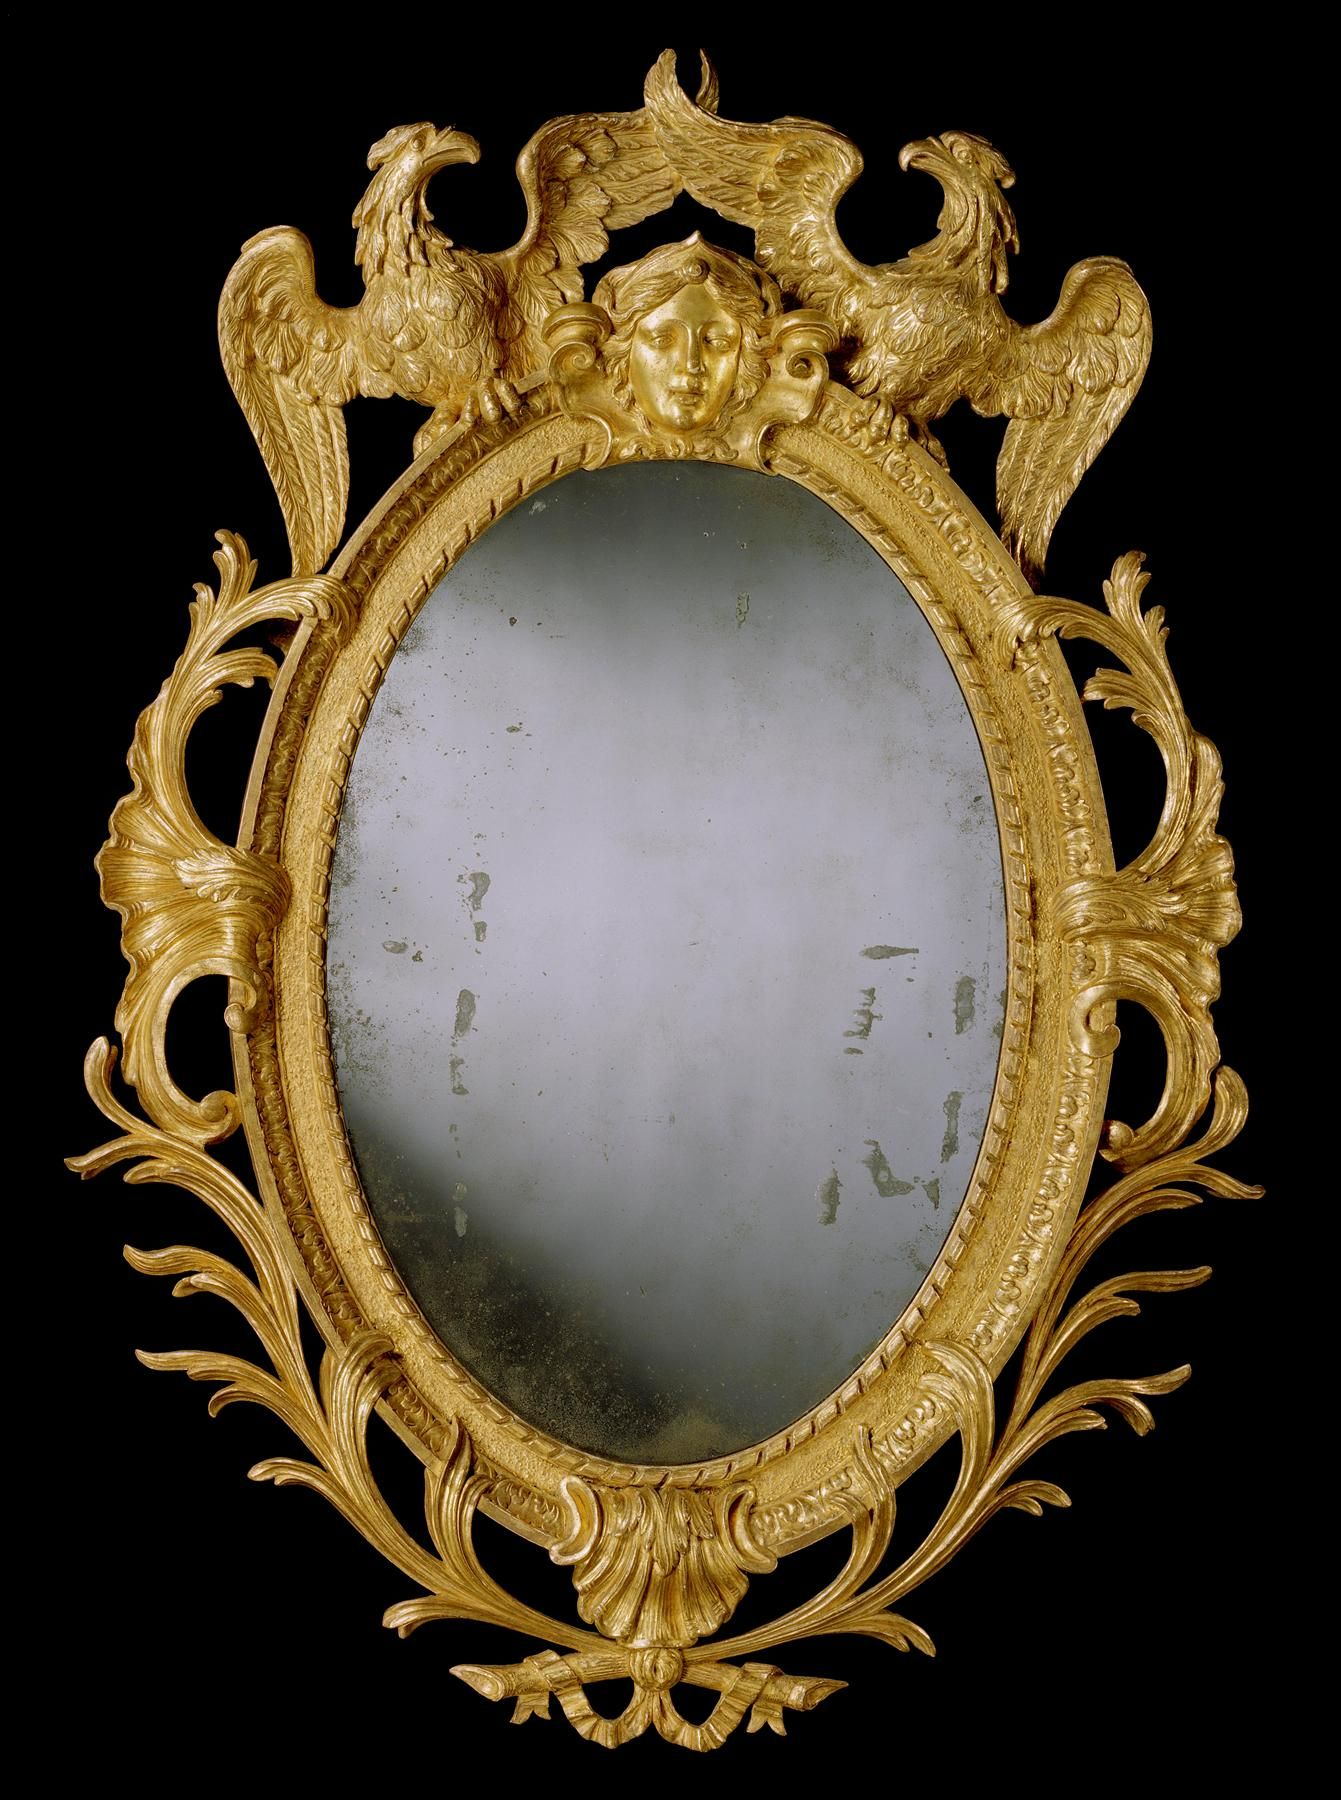 *A GEORGE II CARVED GILTWOOD OVAL MIRROR  A most unusual and rare mid 18th century carved giltwood oval mirror in the manner of William Kent. The replacement 18th century mirror plate having carved rope twist border and sanded surround with acanthus leaf moulding, centred by the head of Diana with cross-winged eagles either side and stylised shells on the sides with acanthus leaf scrolls, having further shell motif below, with ribboned palm leaf branches beneath.  English, circa 1740